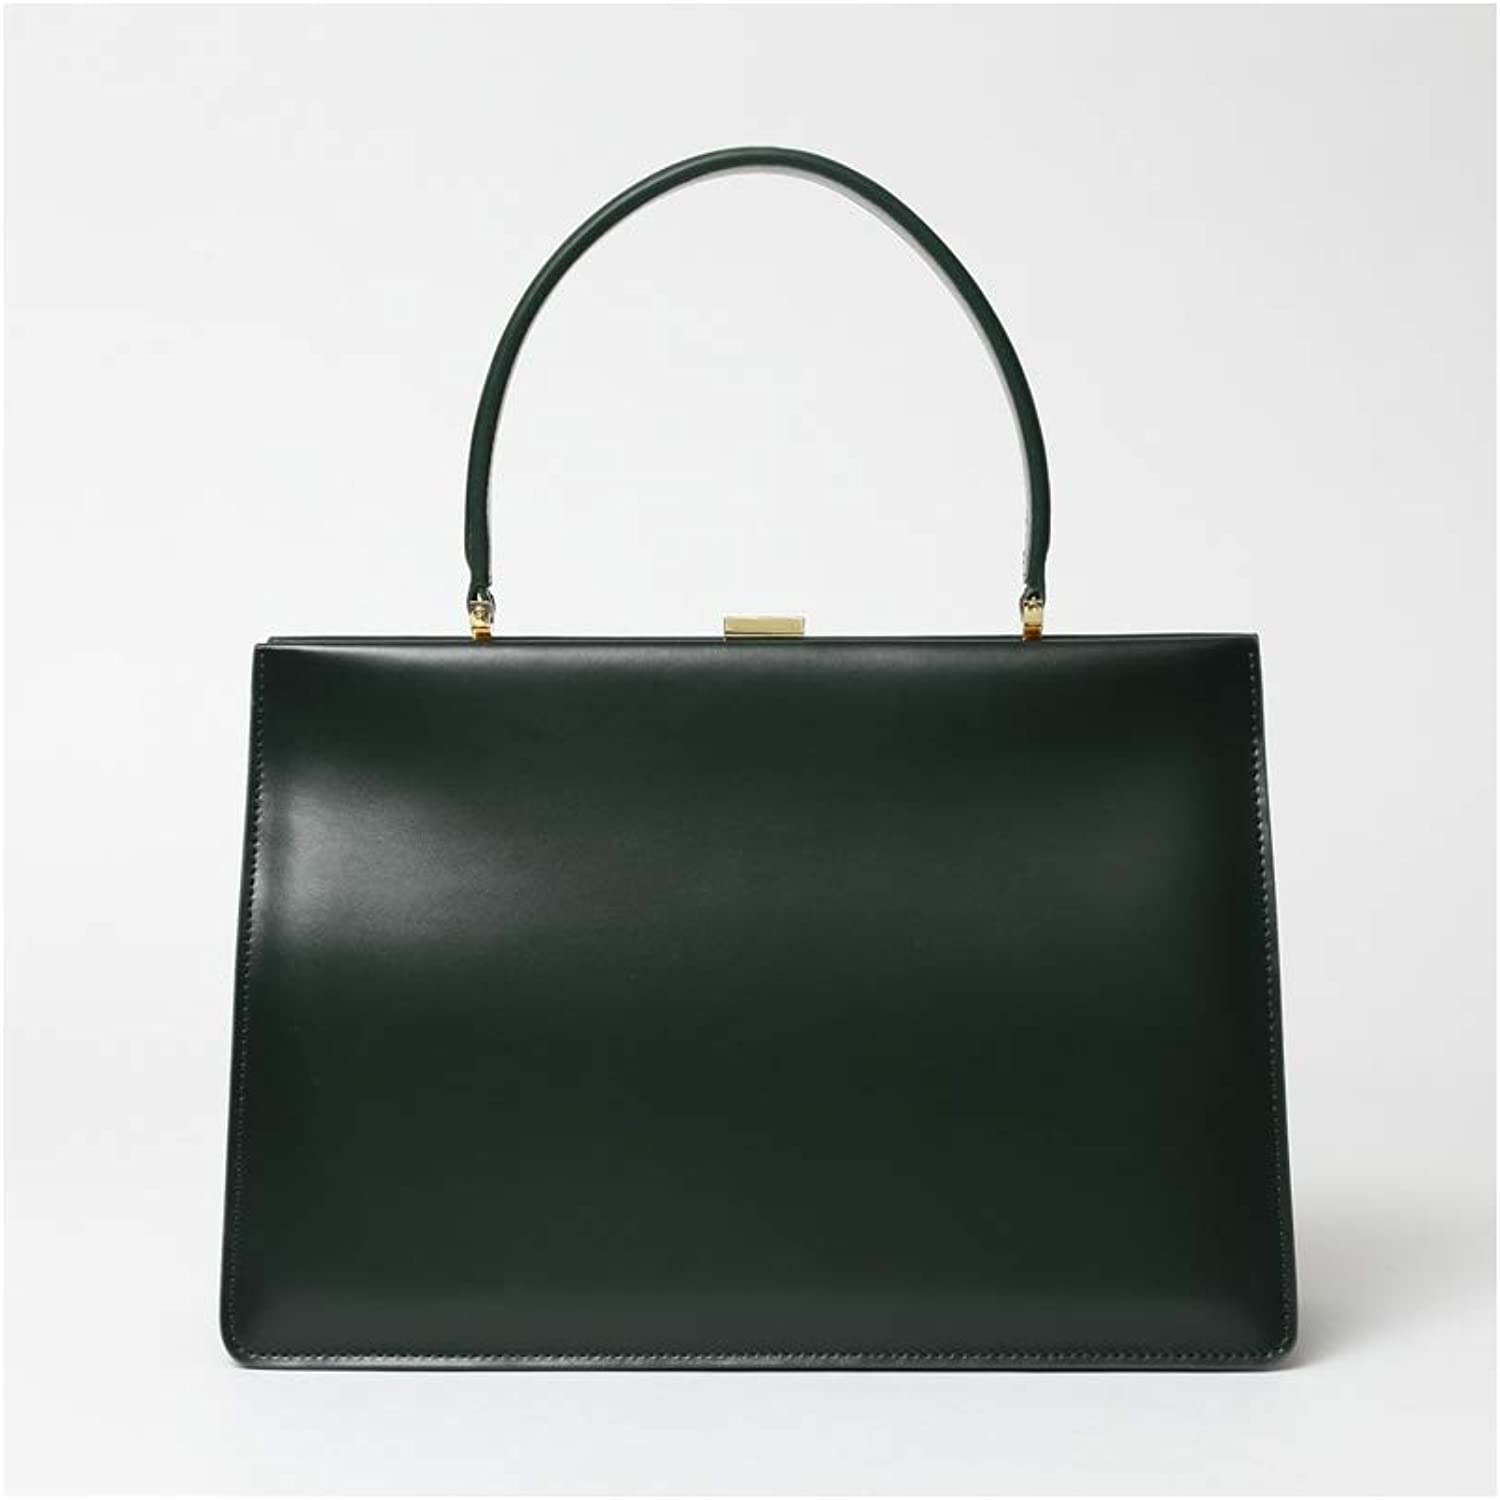 ASHIJIN Ms. Street Style Vintage Handbags Ms. New Personality Handbags